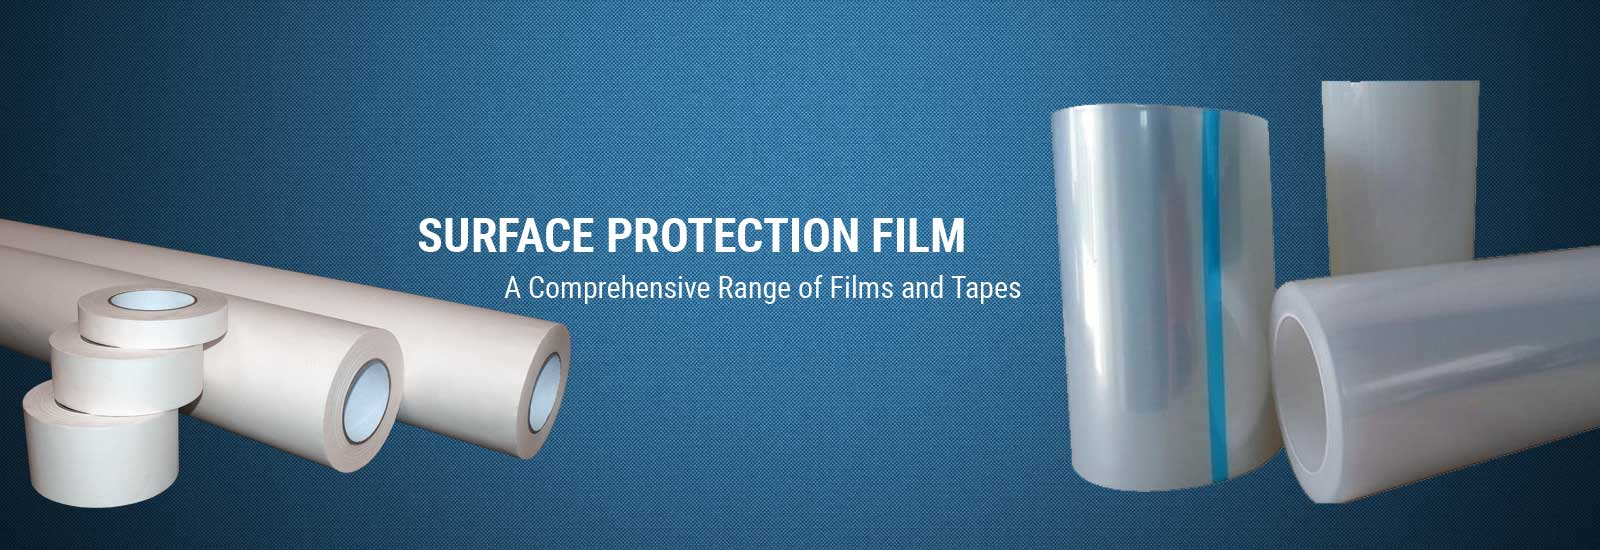 Surface Protection Film Manufacturers in Gurugram